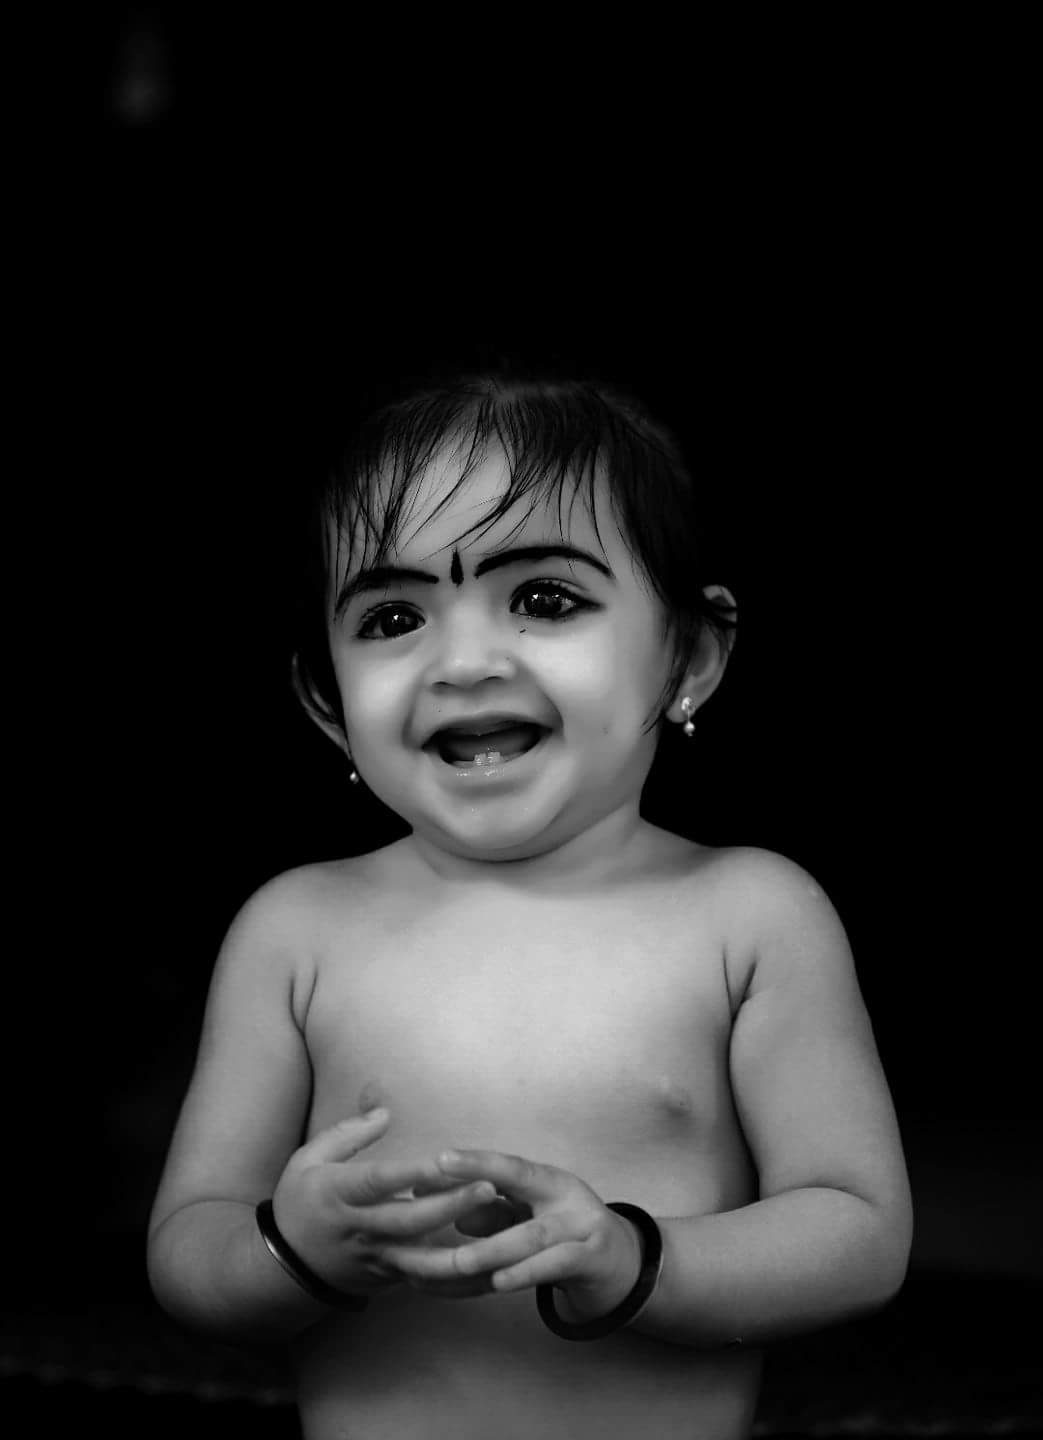 baby black and white by jithin.pv.9